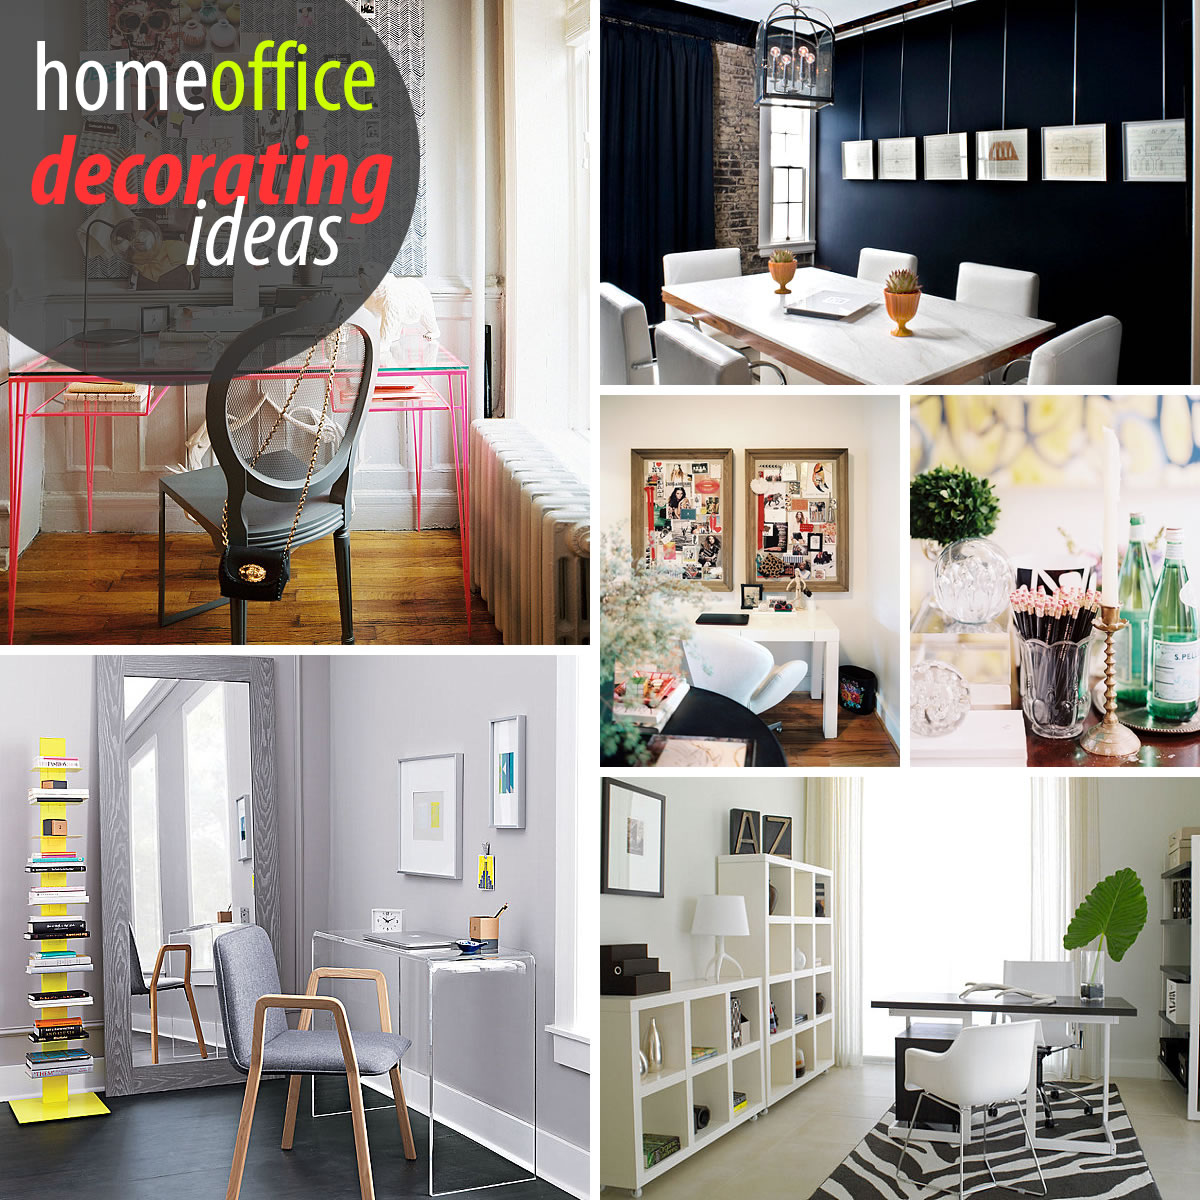 Creative home office decorating ideas for Home office design decorating ideas